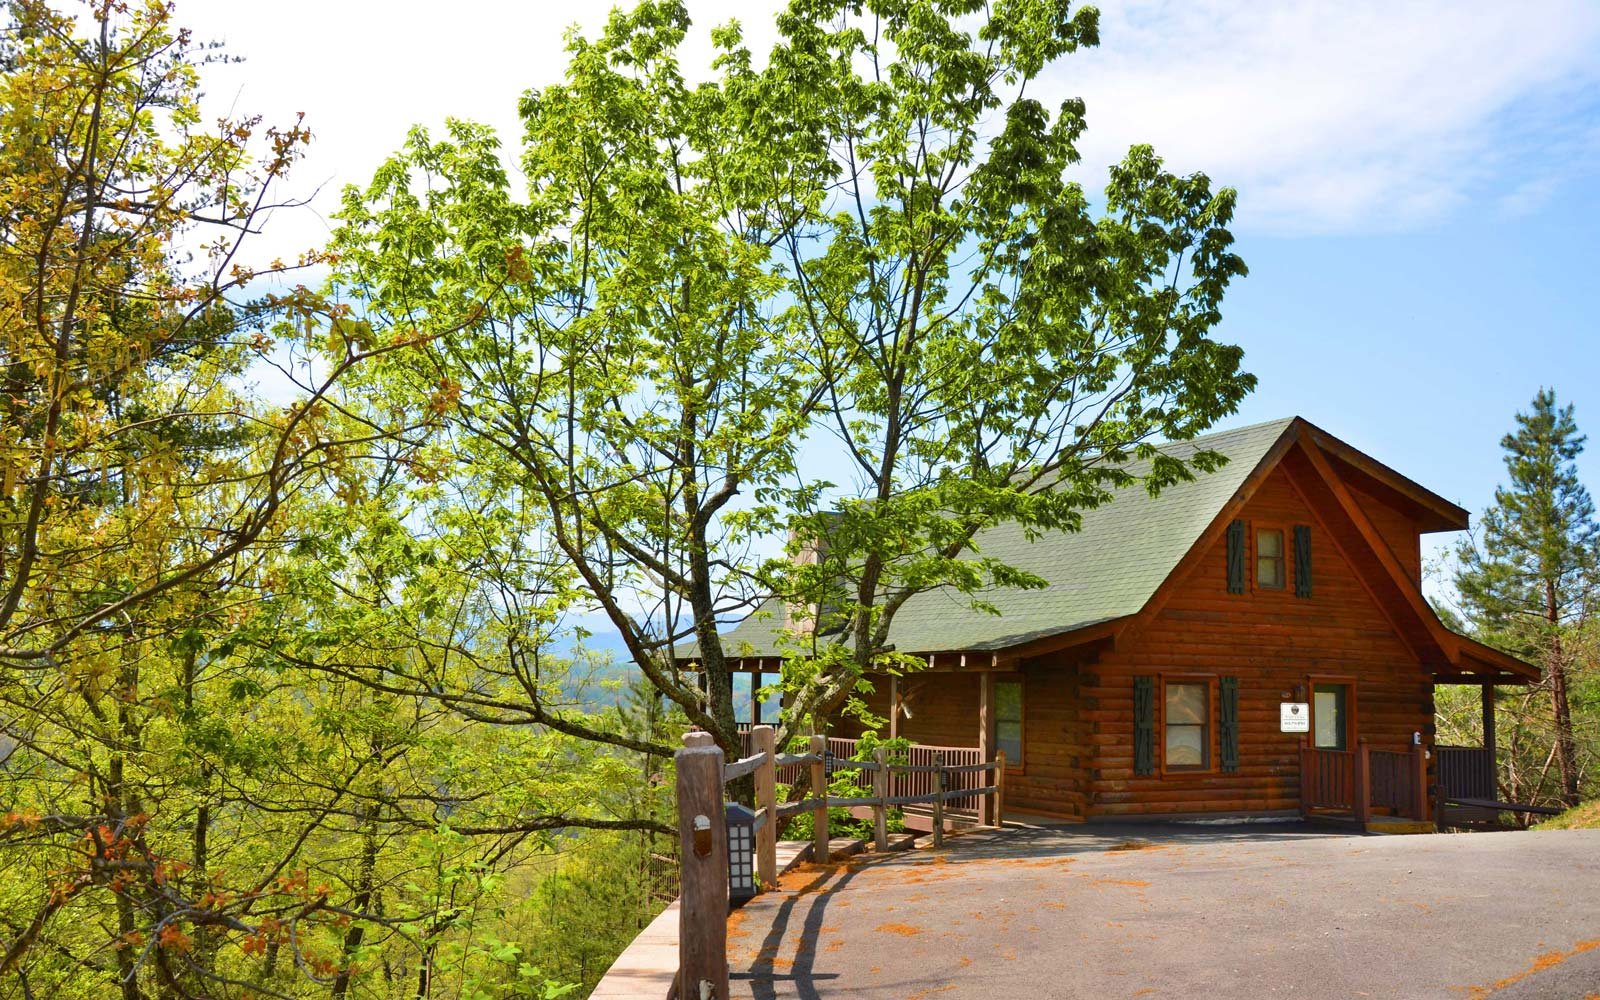 cheap luxury discount tn gatlburg gatlinburg door affordable smokies in the cabins